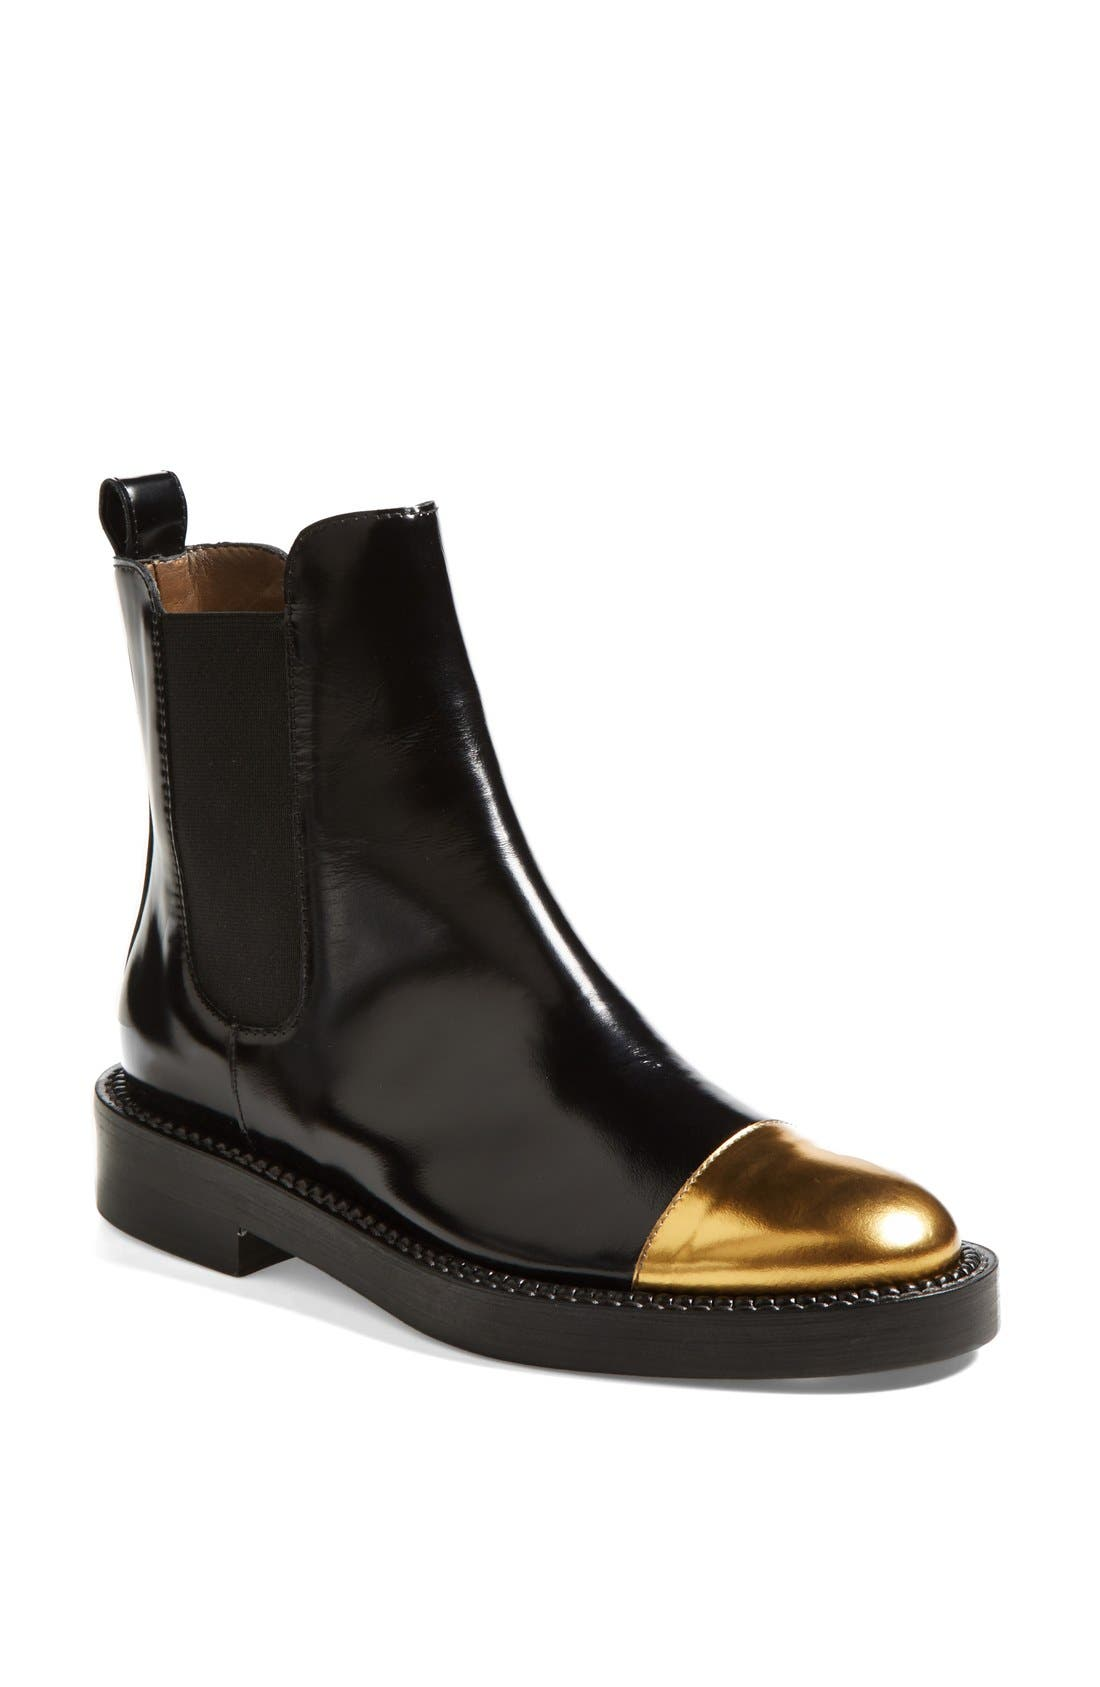 Alternate Image 1 Selected - Marni 'Chelsea' Boot